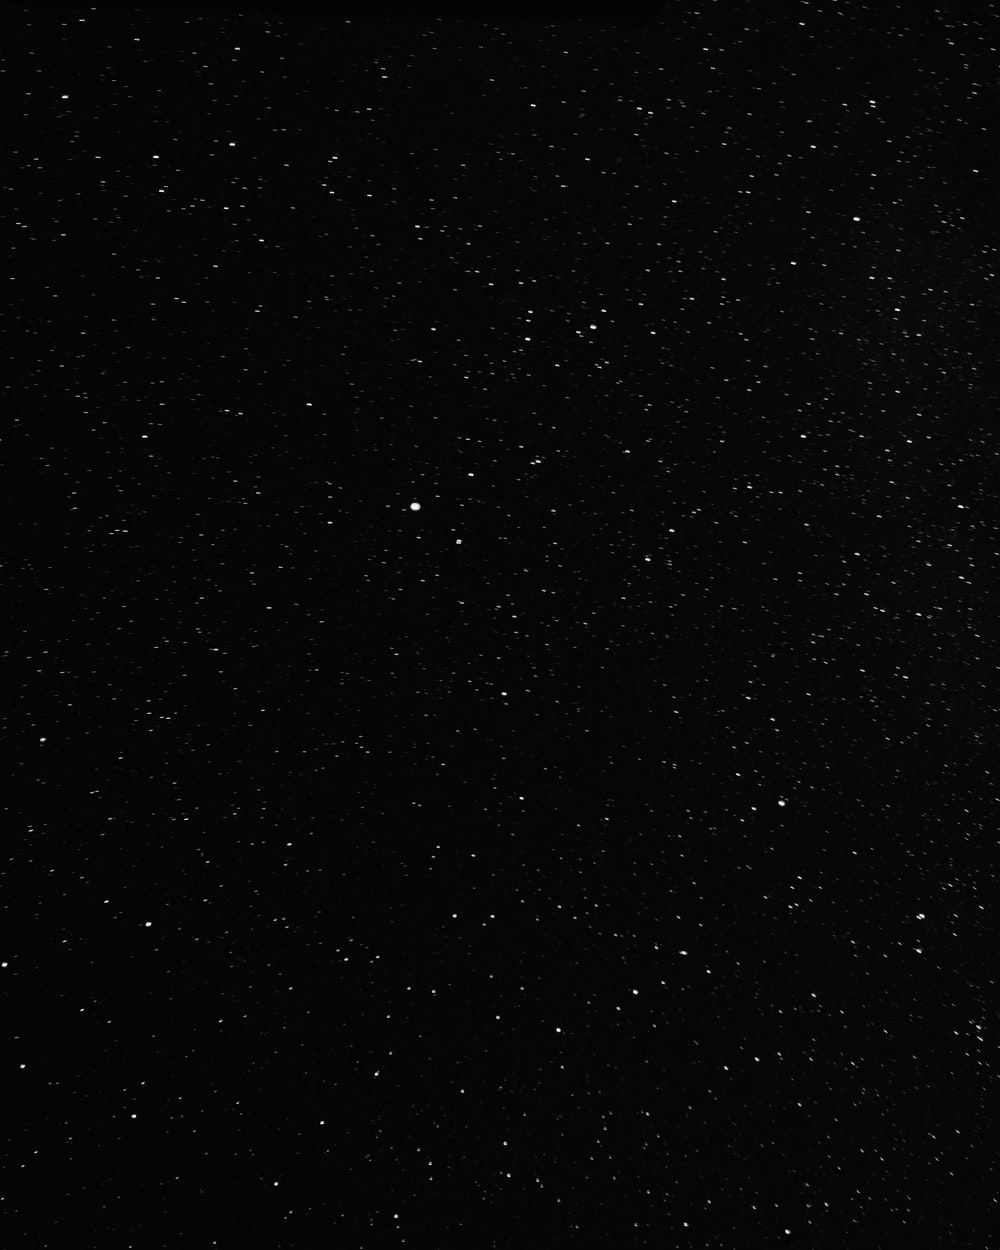 black and white stars in the sky